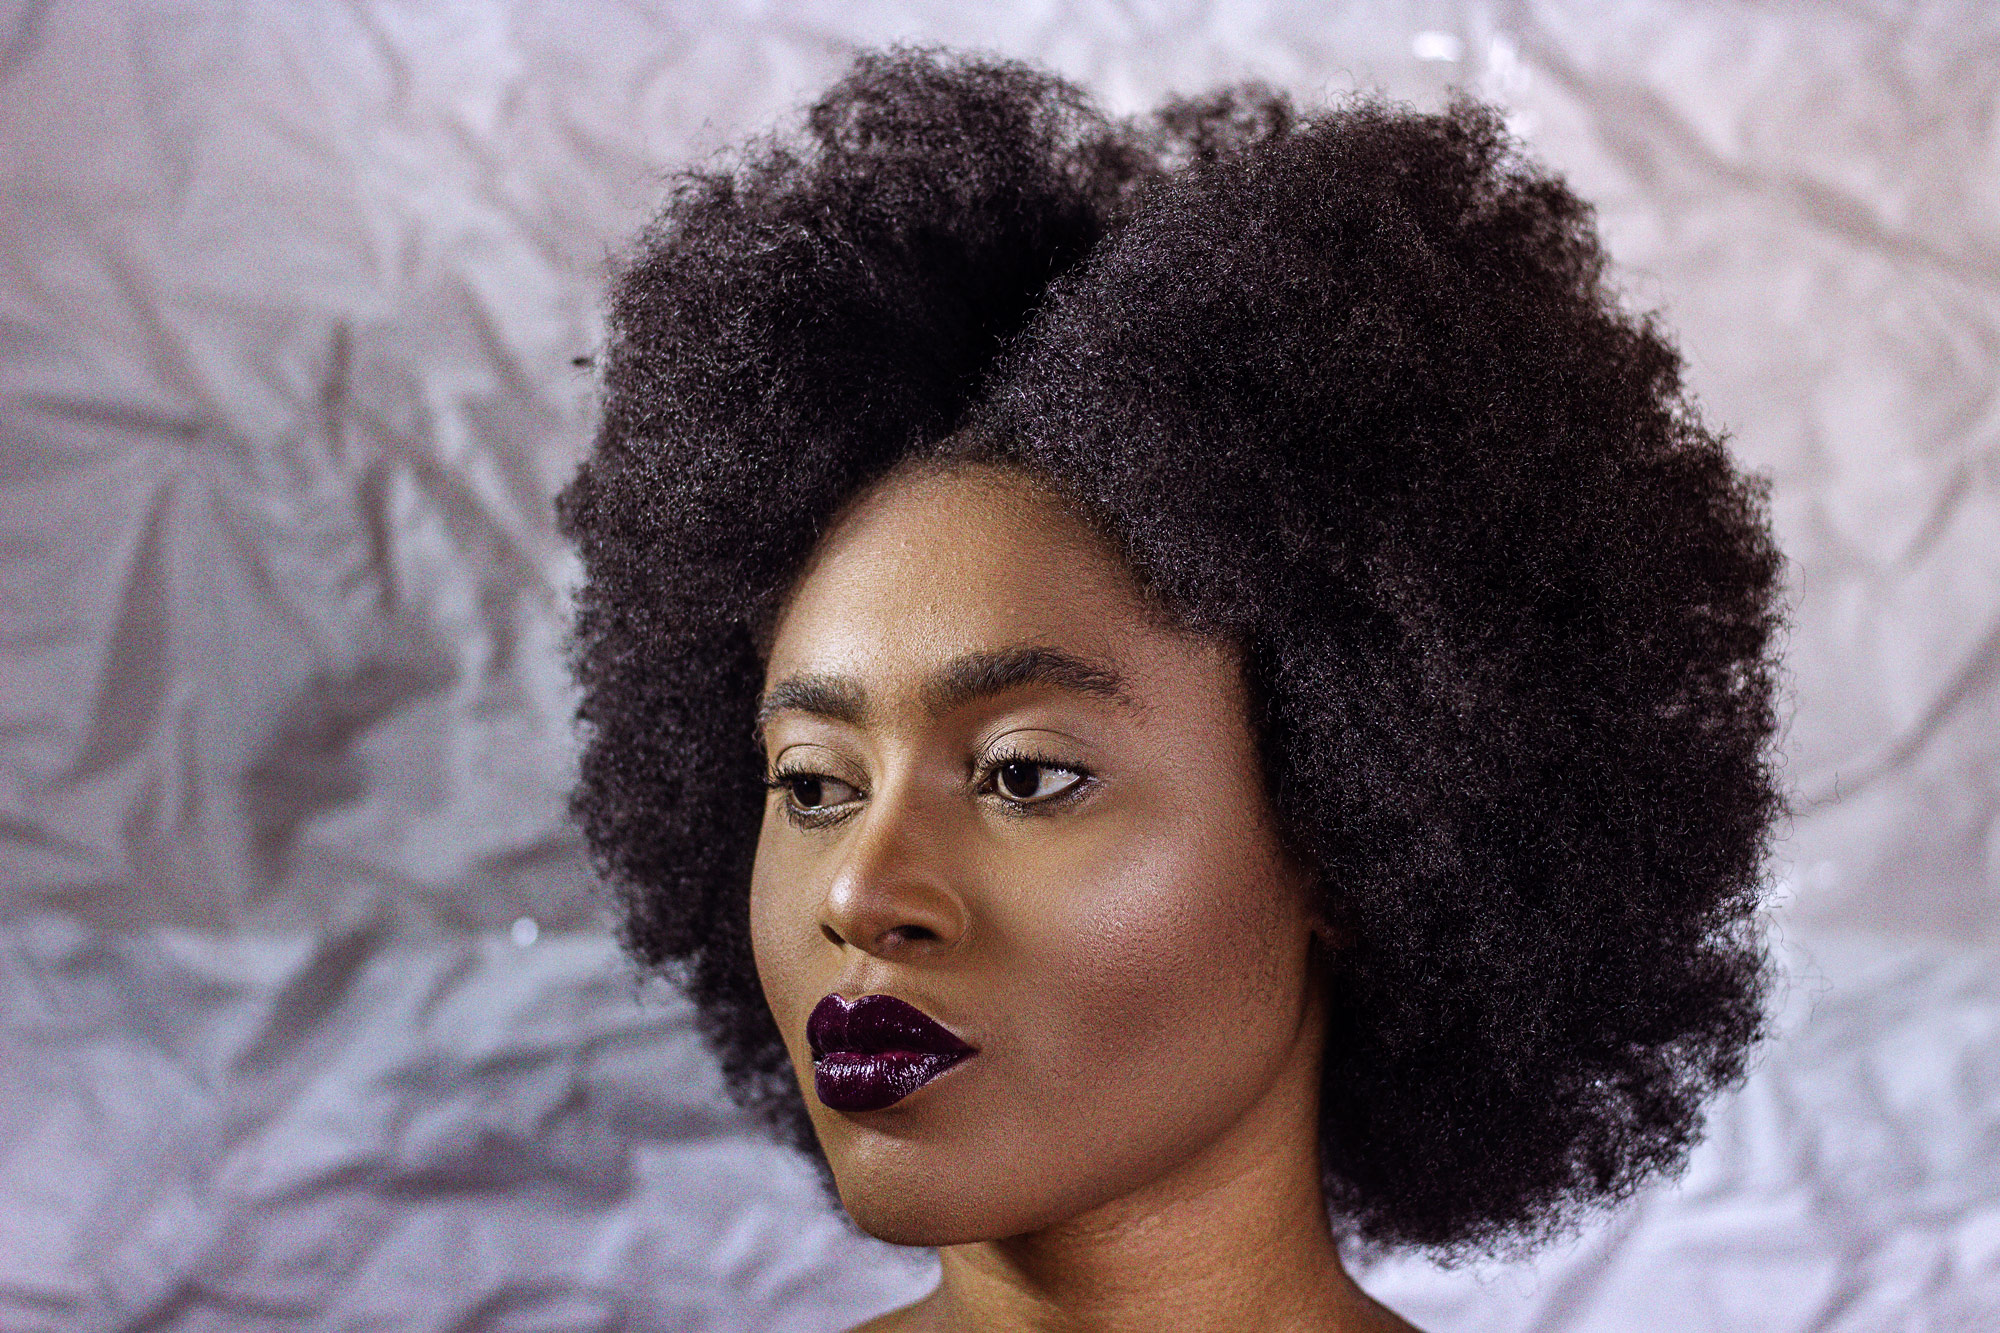 Beauty editorial smiling African woman with afro purple glossy lips